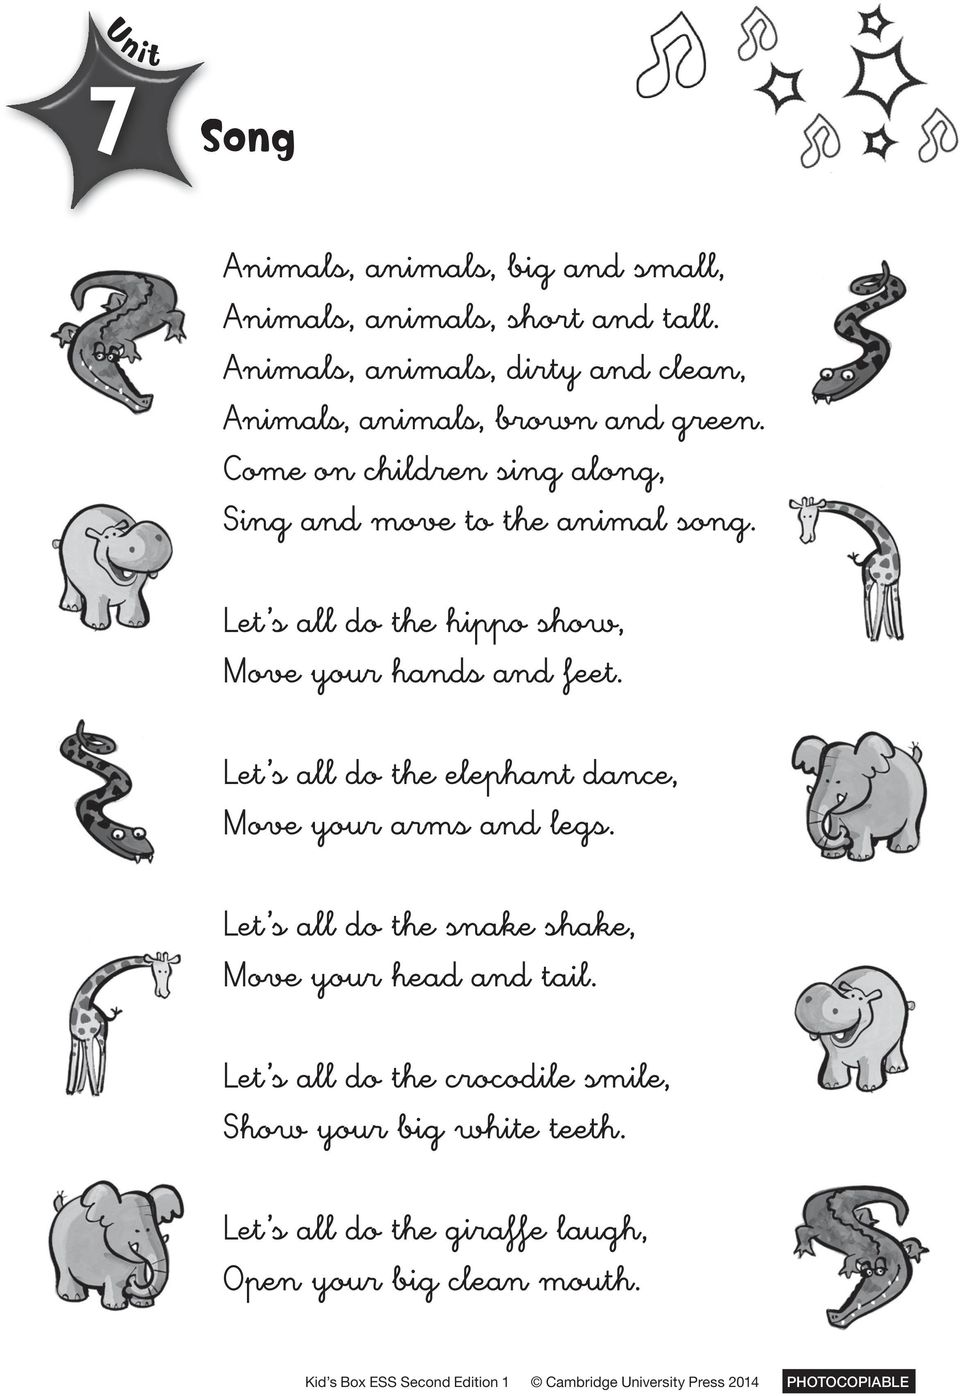 Come on children sing along, Sing and move to the animal song. Let s all do the hippo show, Move your hands and feet.